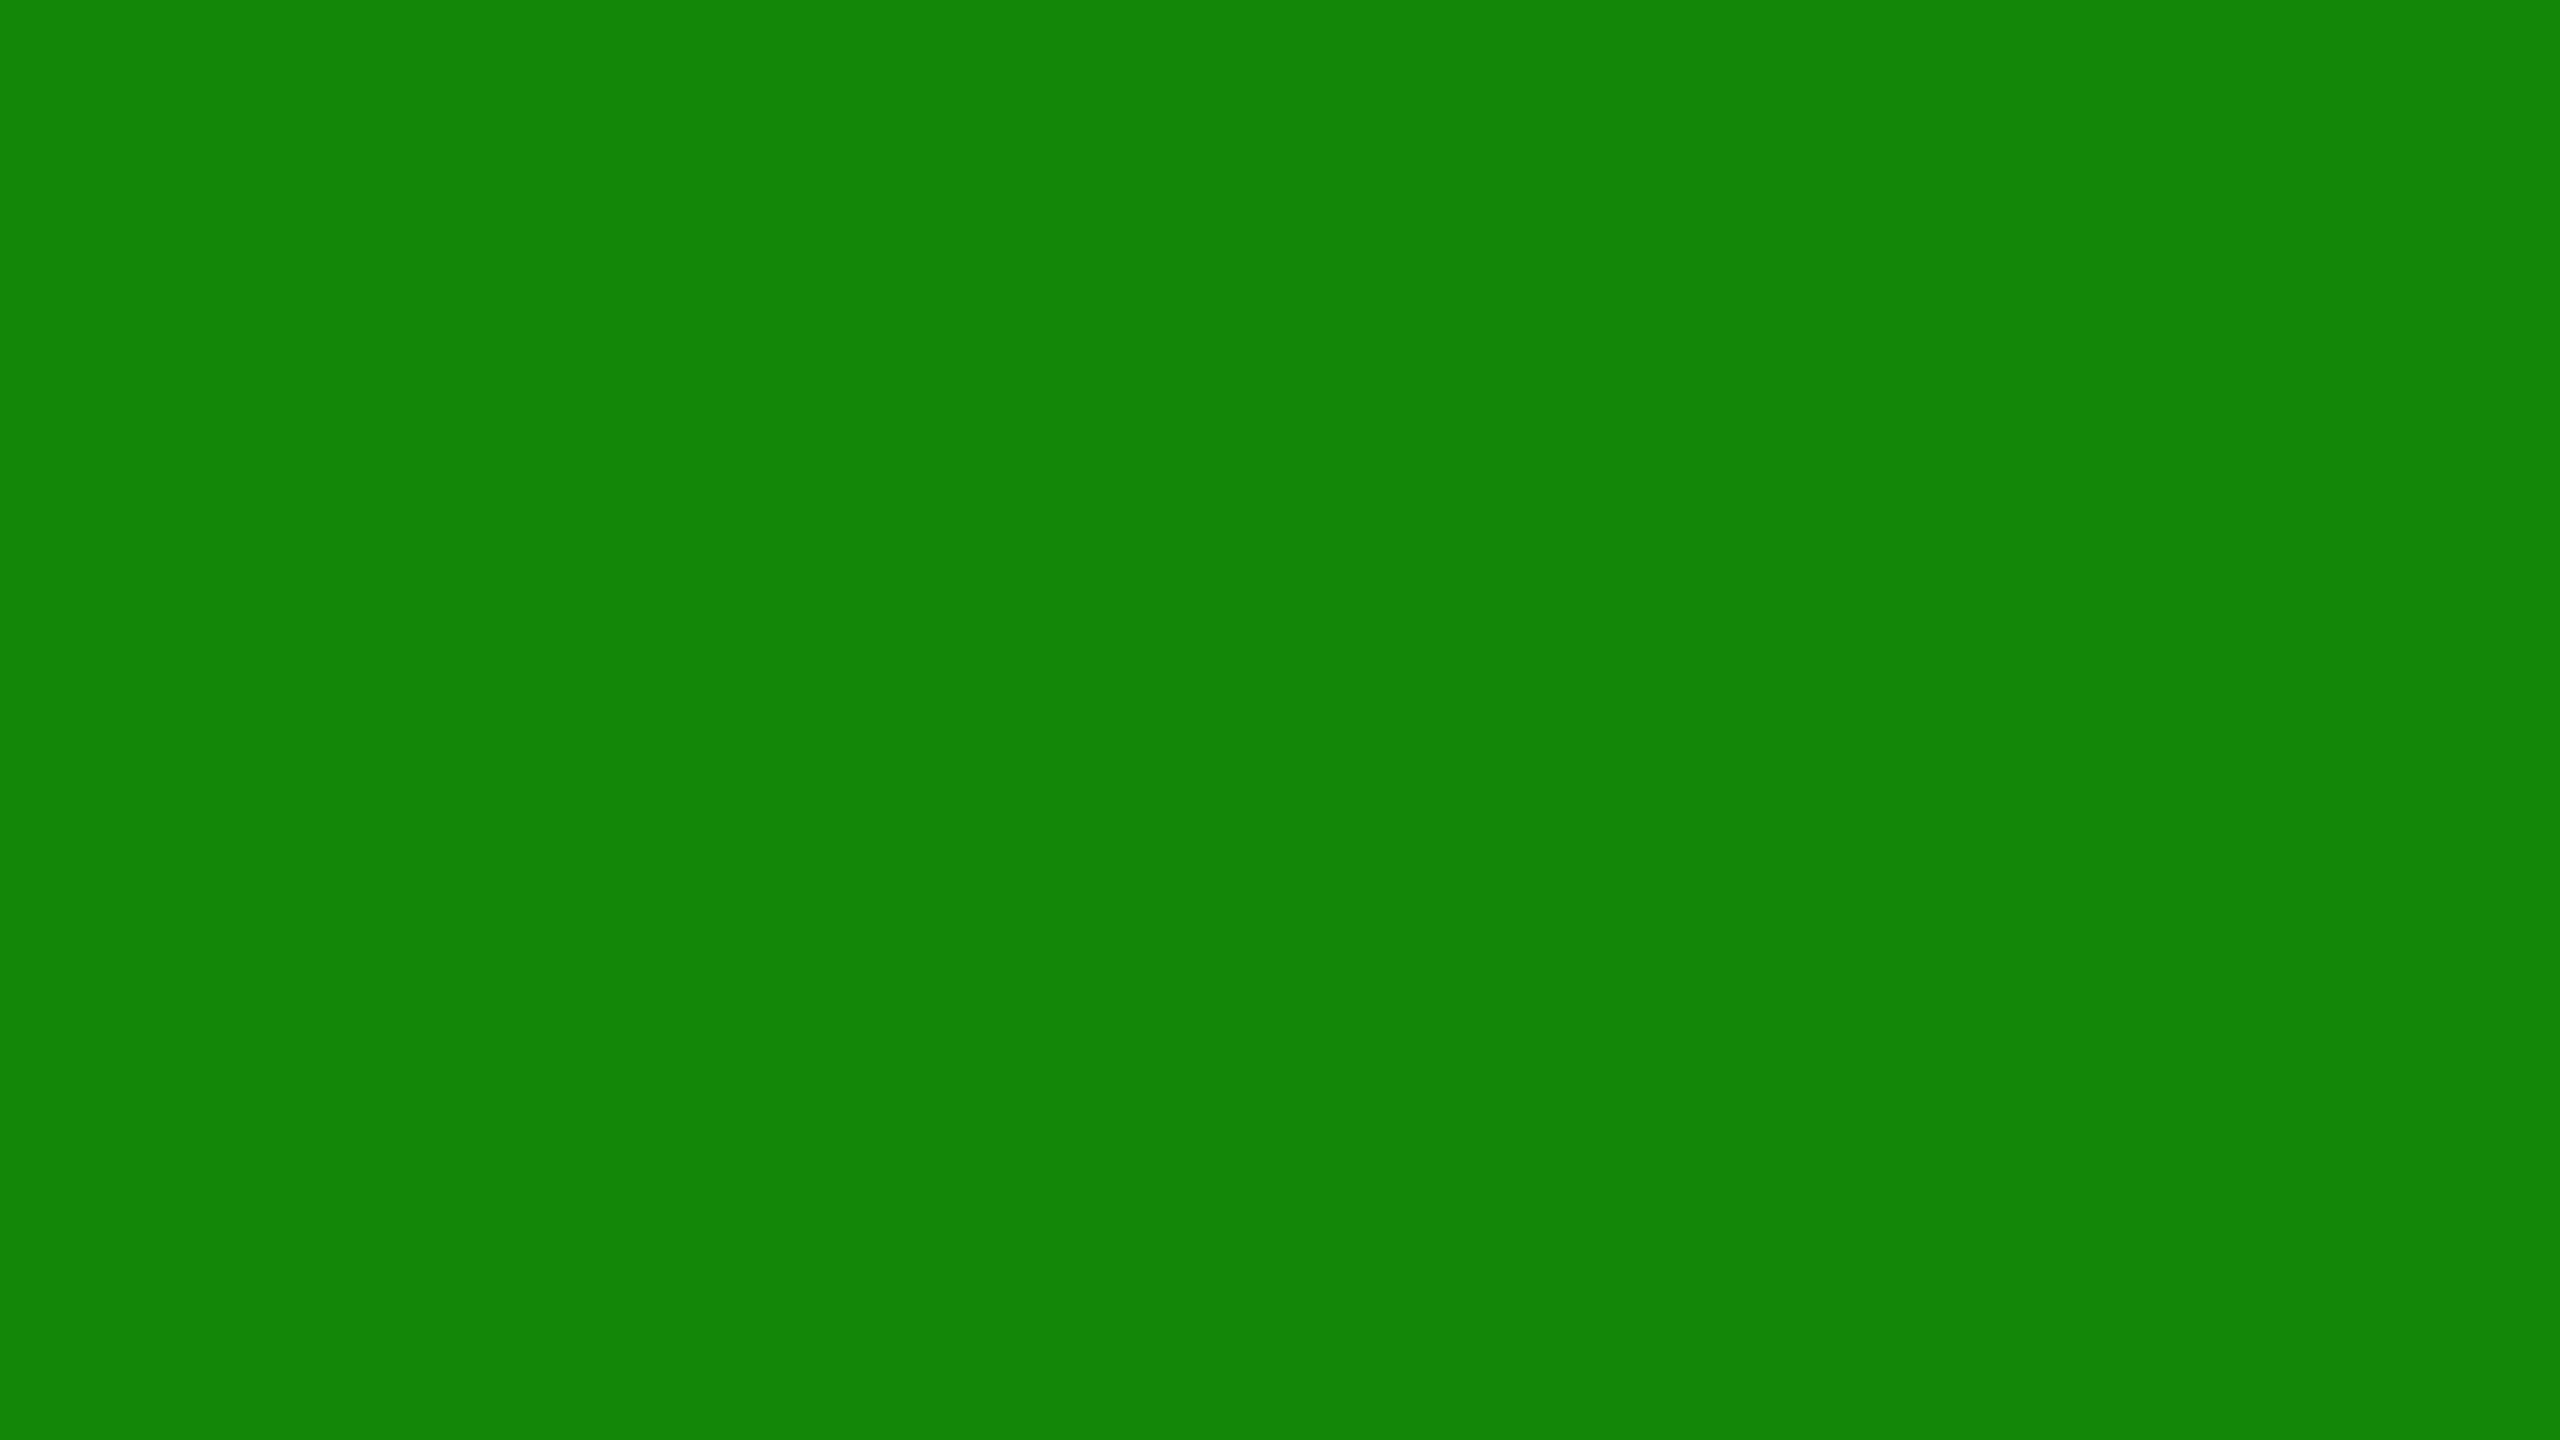 2560x1440 India Green Solid Color Background